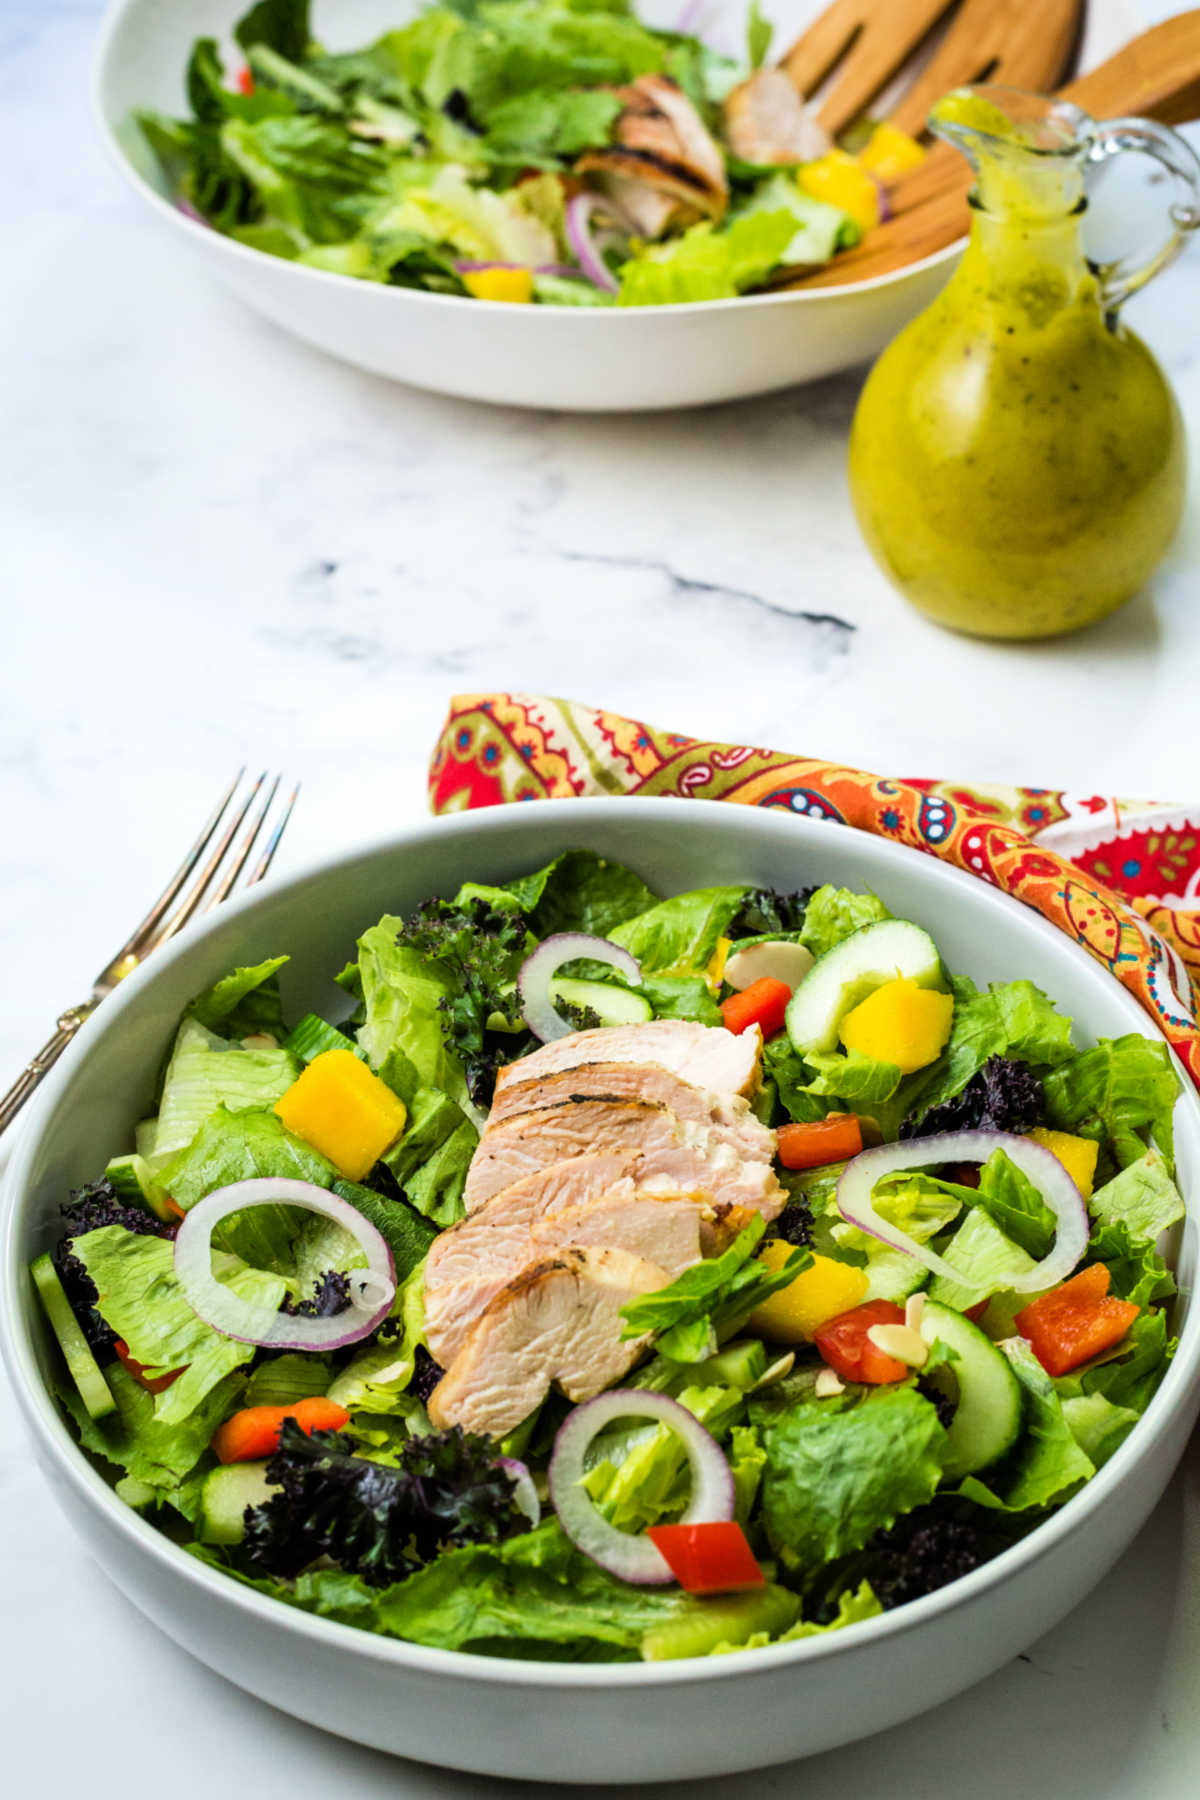 grilled chicken salad in a bowl on a table with a bottle of mango dressing.